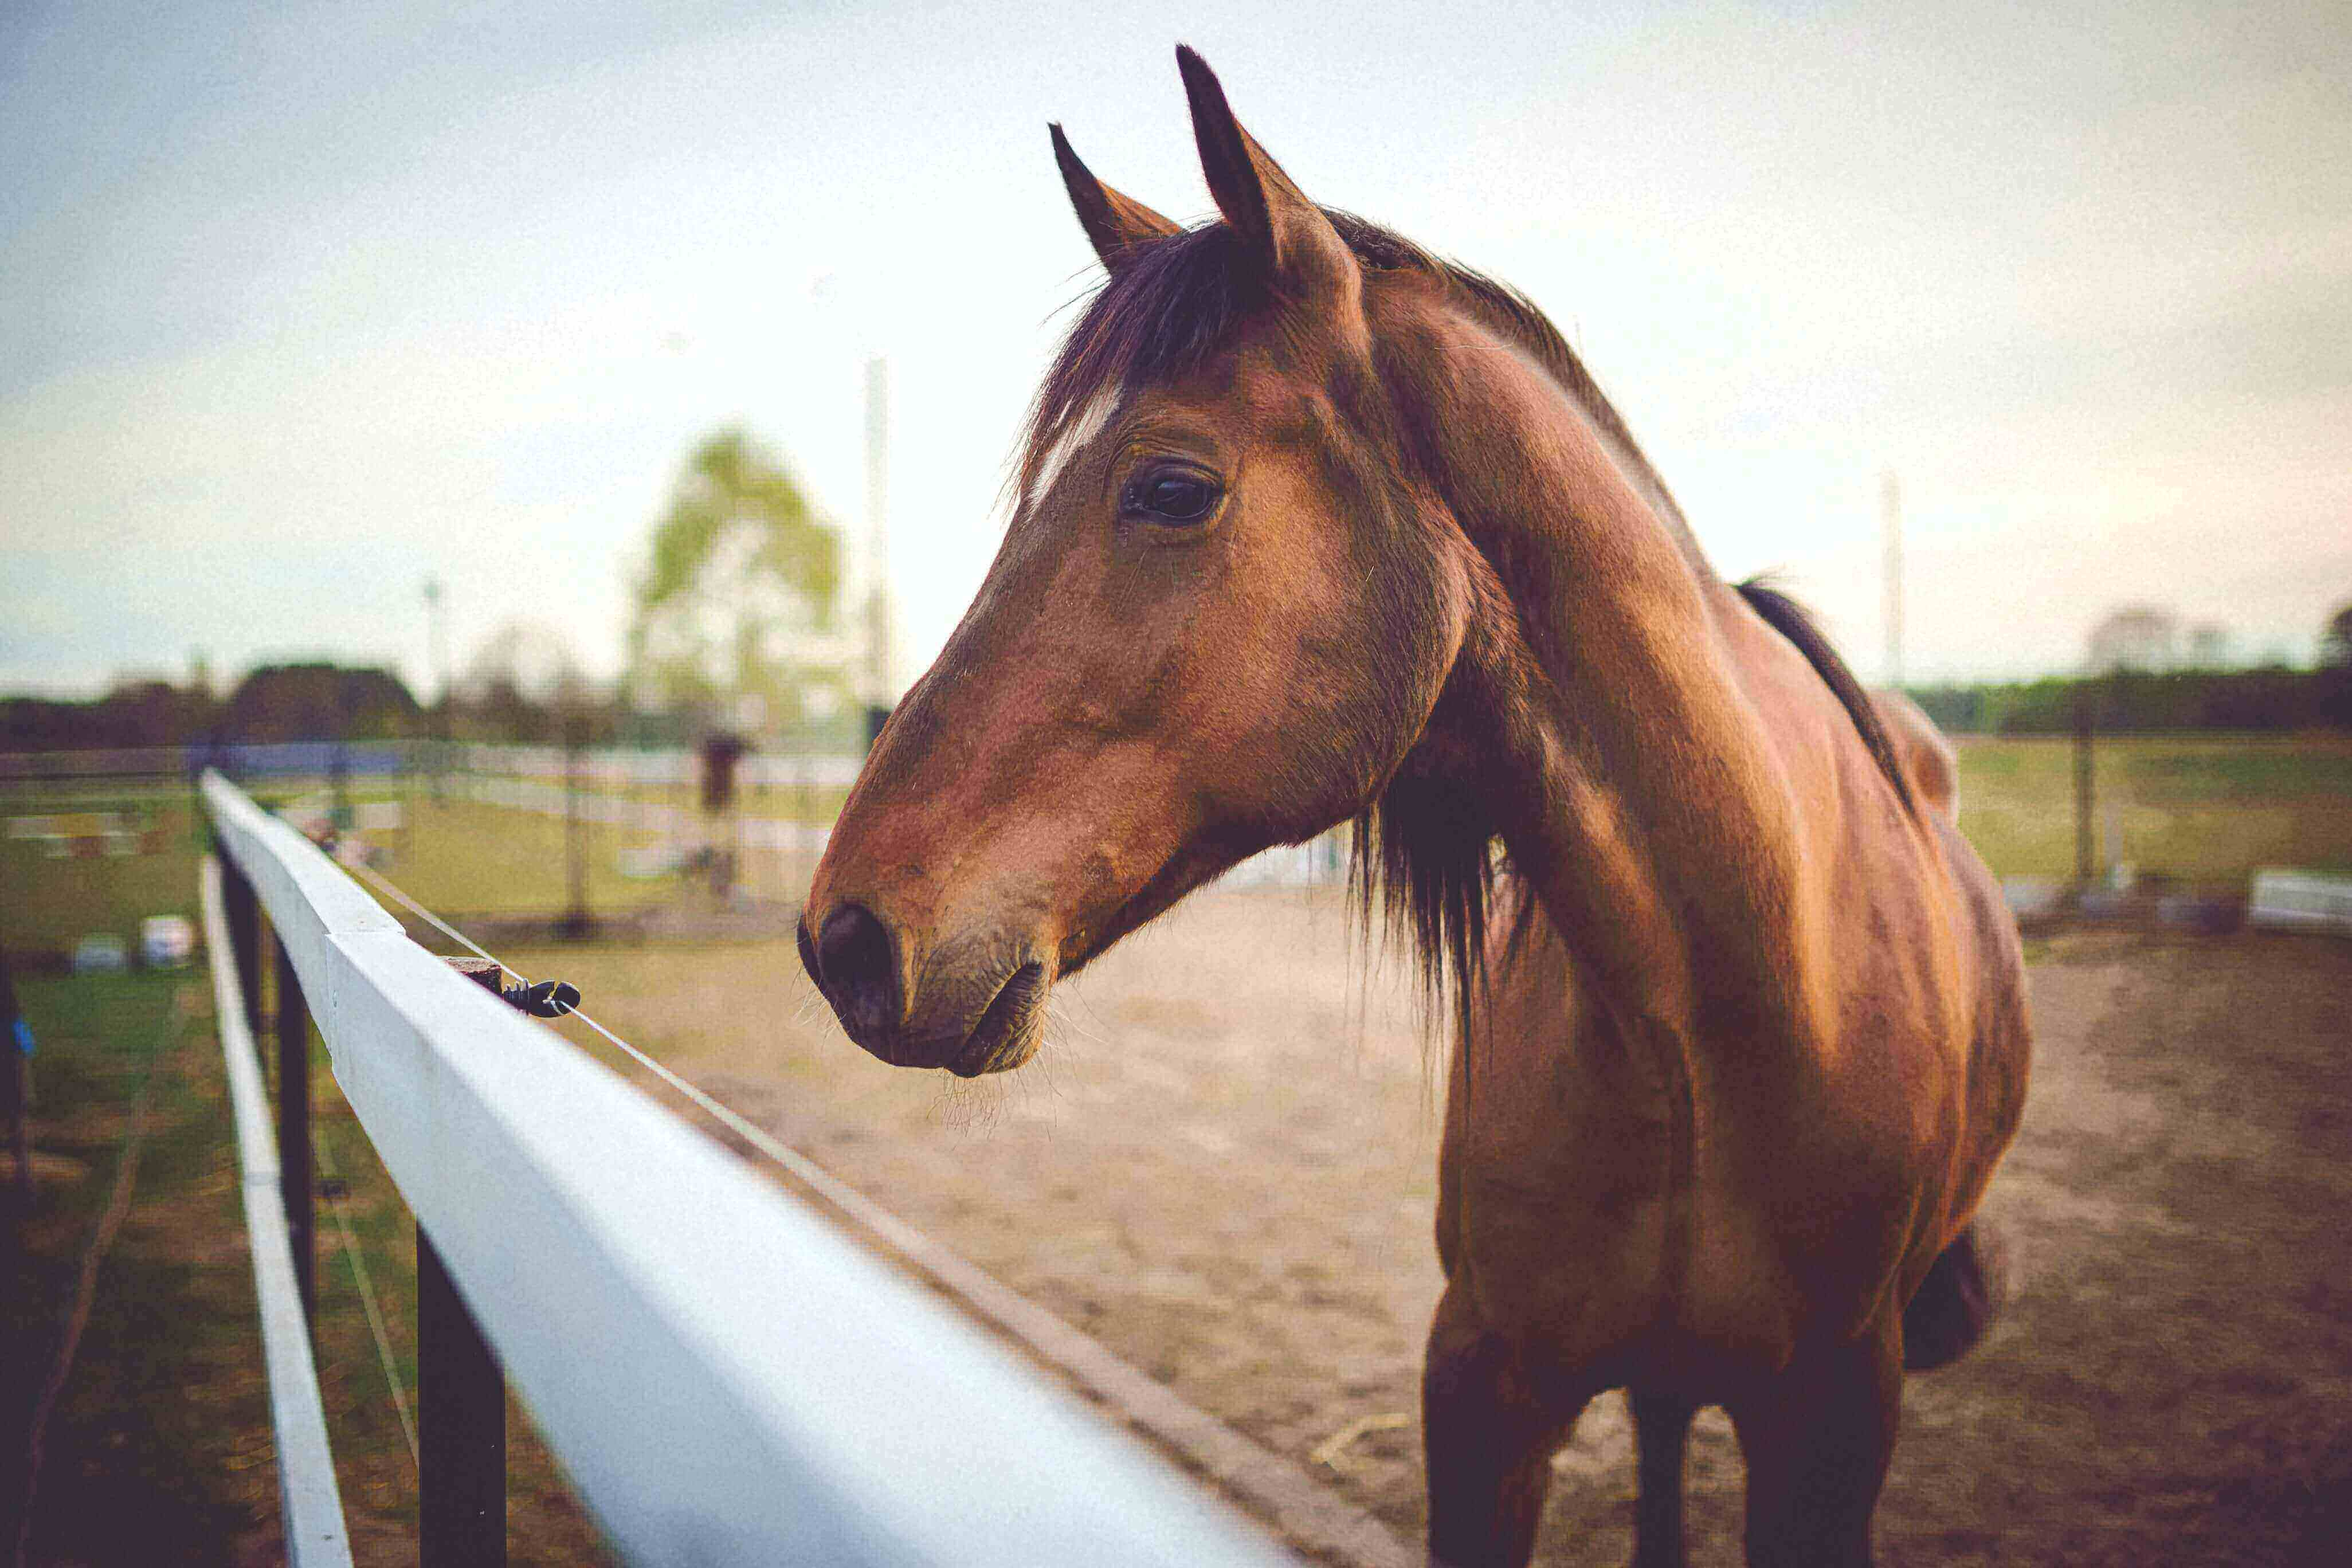 A brown horse with a harness looks down at the camera, behind him is a clear blue sky.